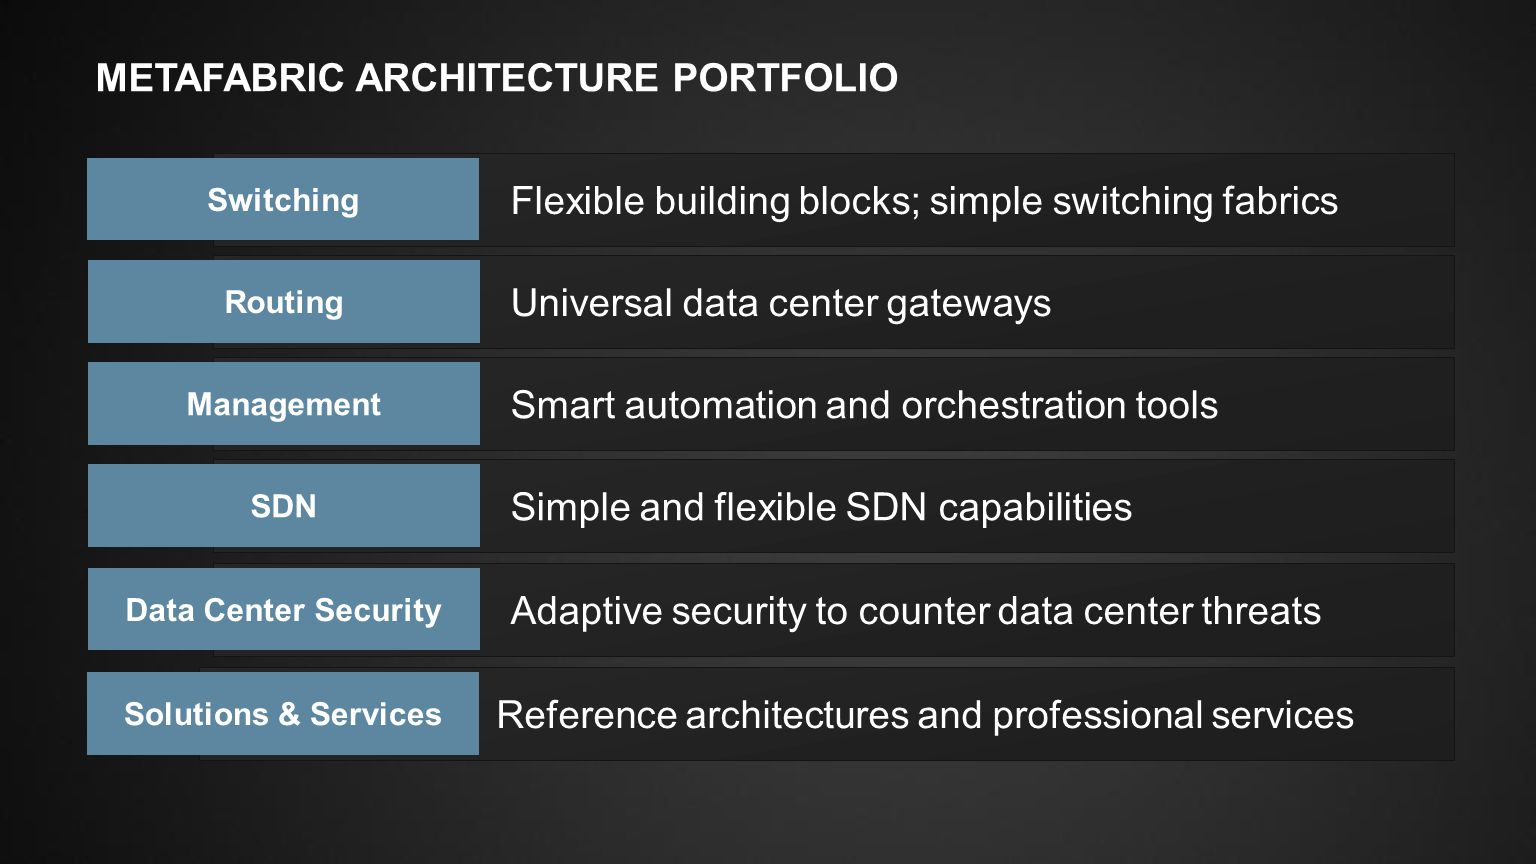 MetaFabric ARCHITECTURE portfolio